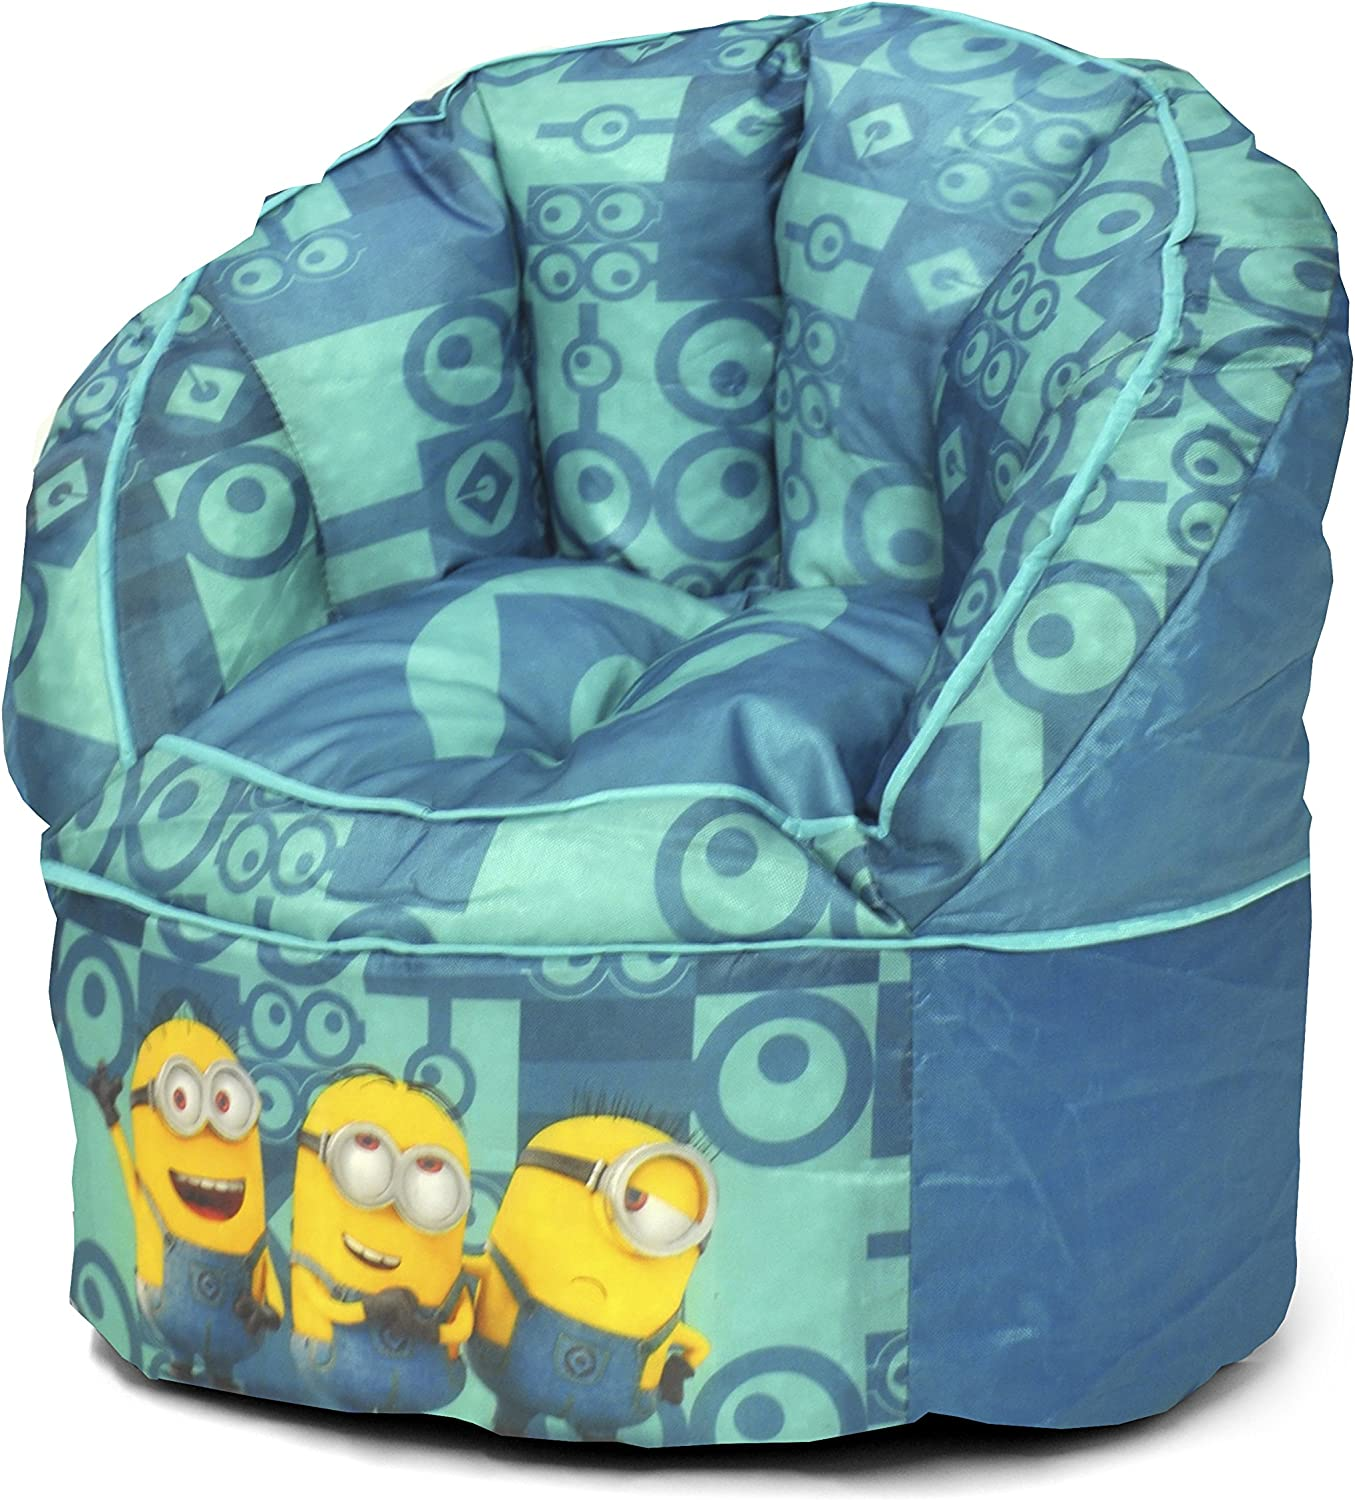 Universal Minions Toddler Bean Bag Chair Teal Idea Nuova WK430192